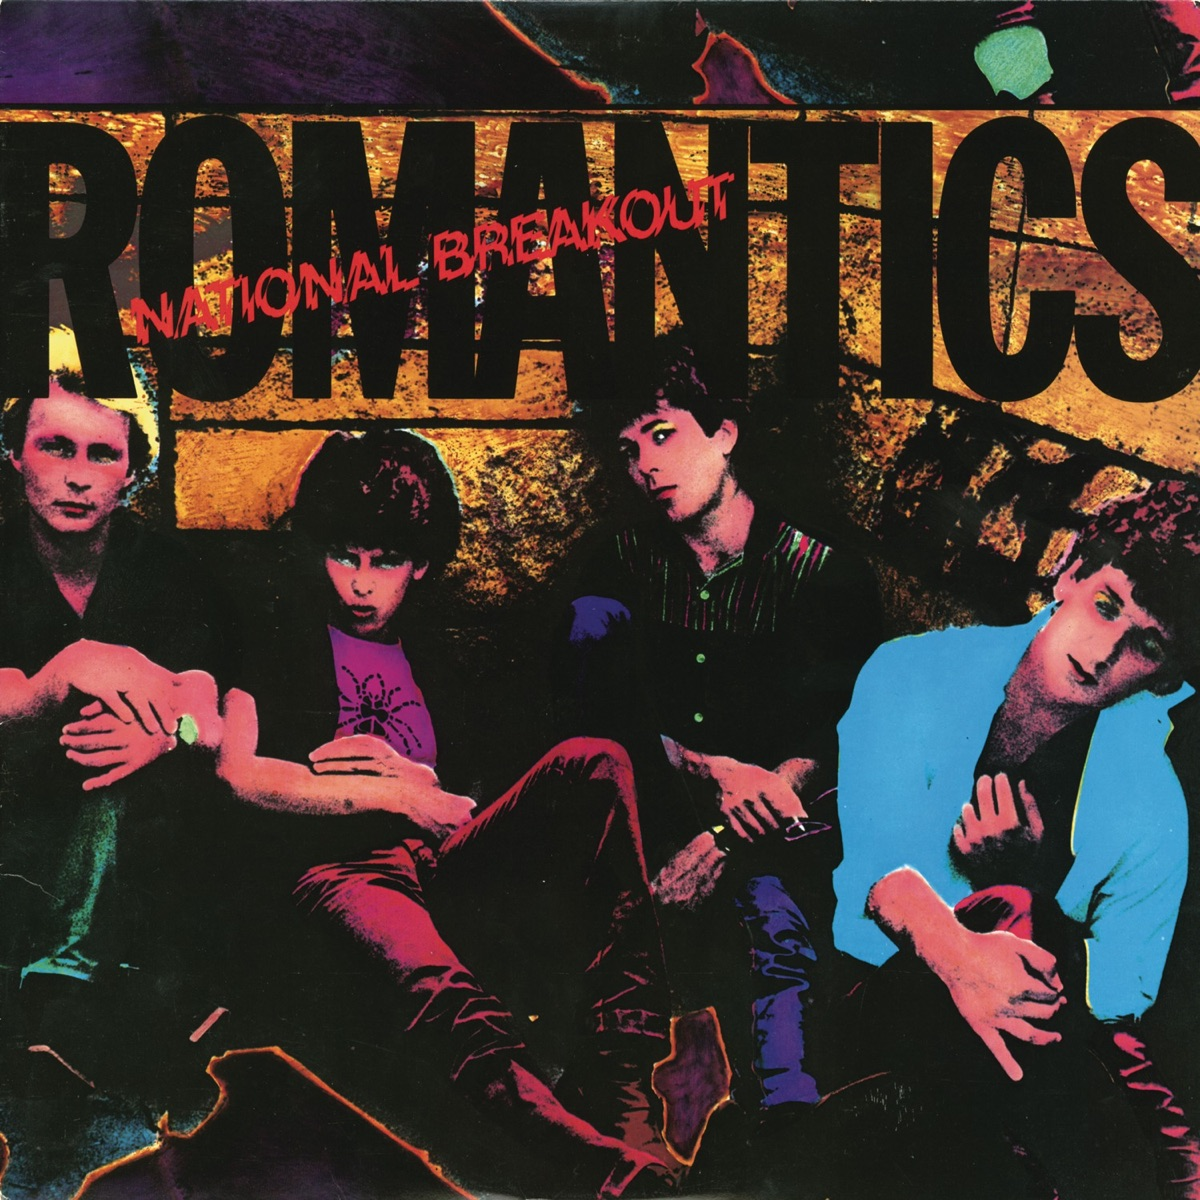 National Breakout The Romantics CD cover